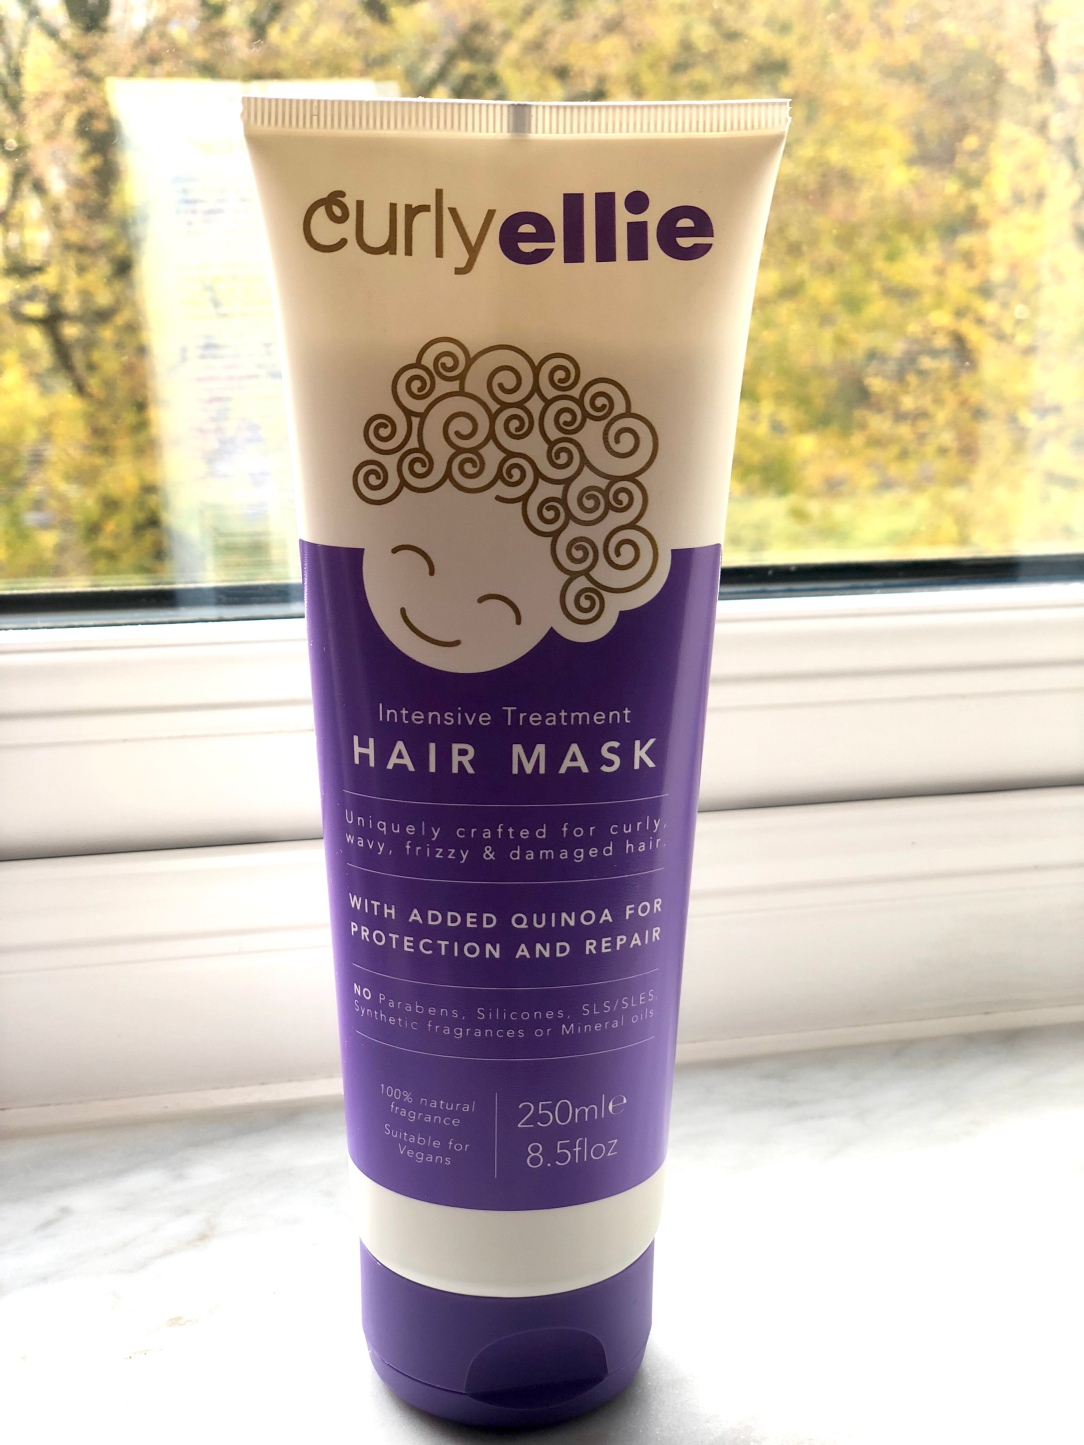 Curlyelluie intensive treatment hair mask